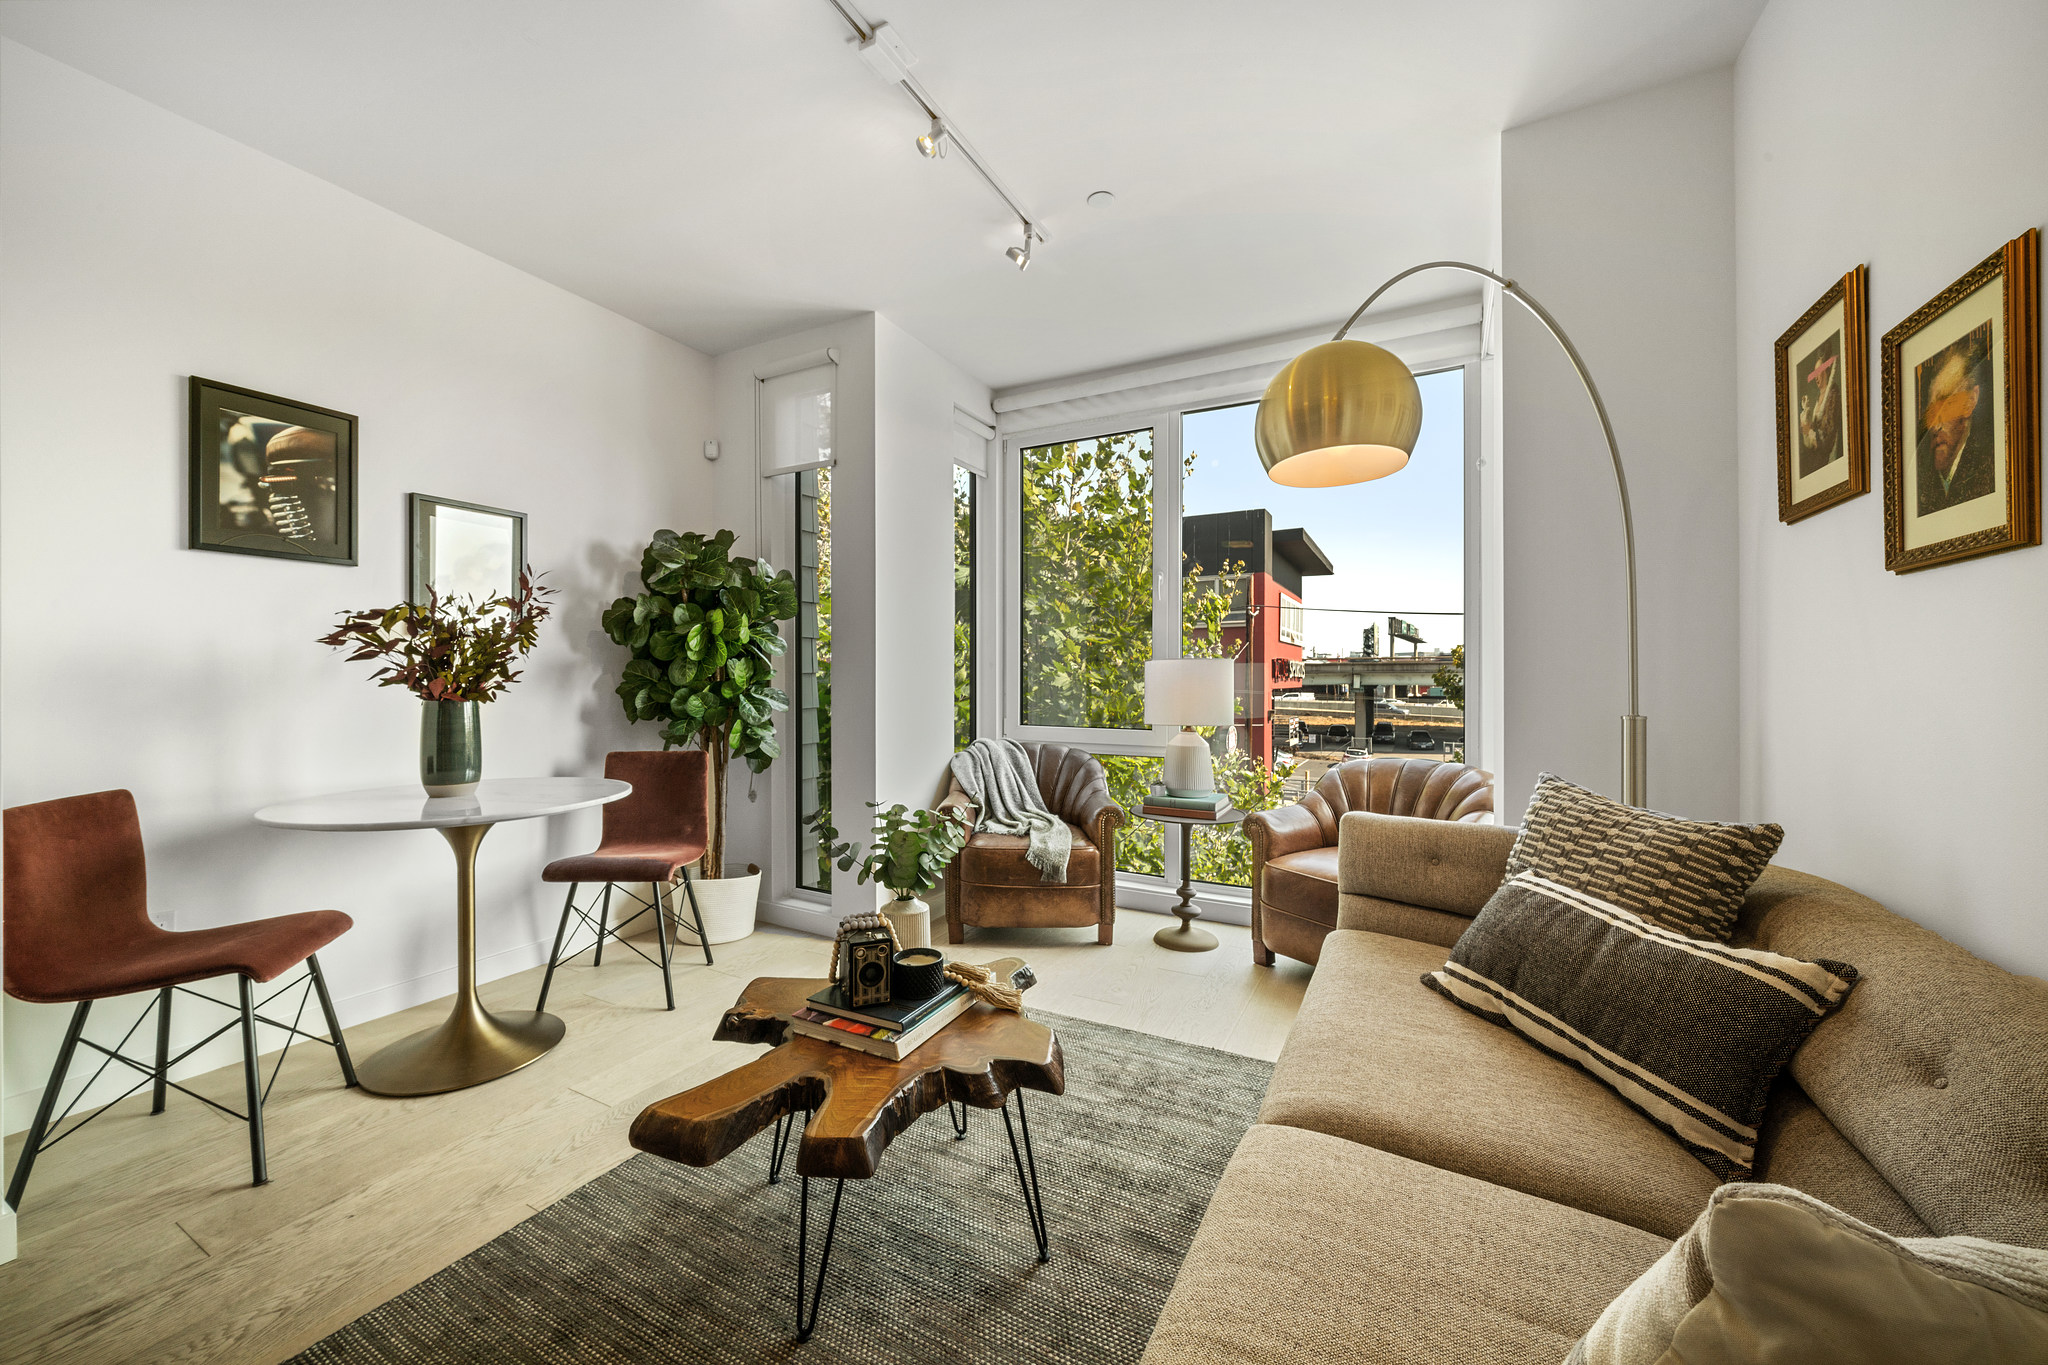 Living room and balcony view - Bay Area Apartment